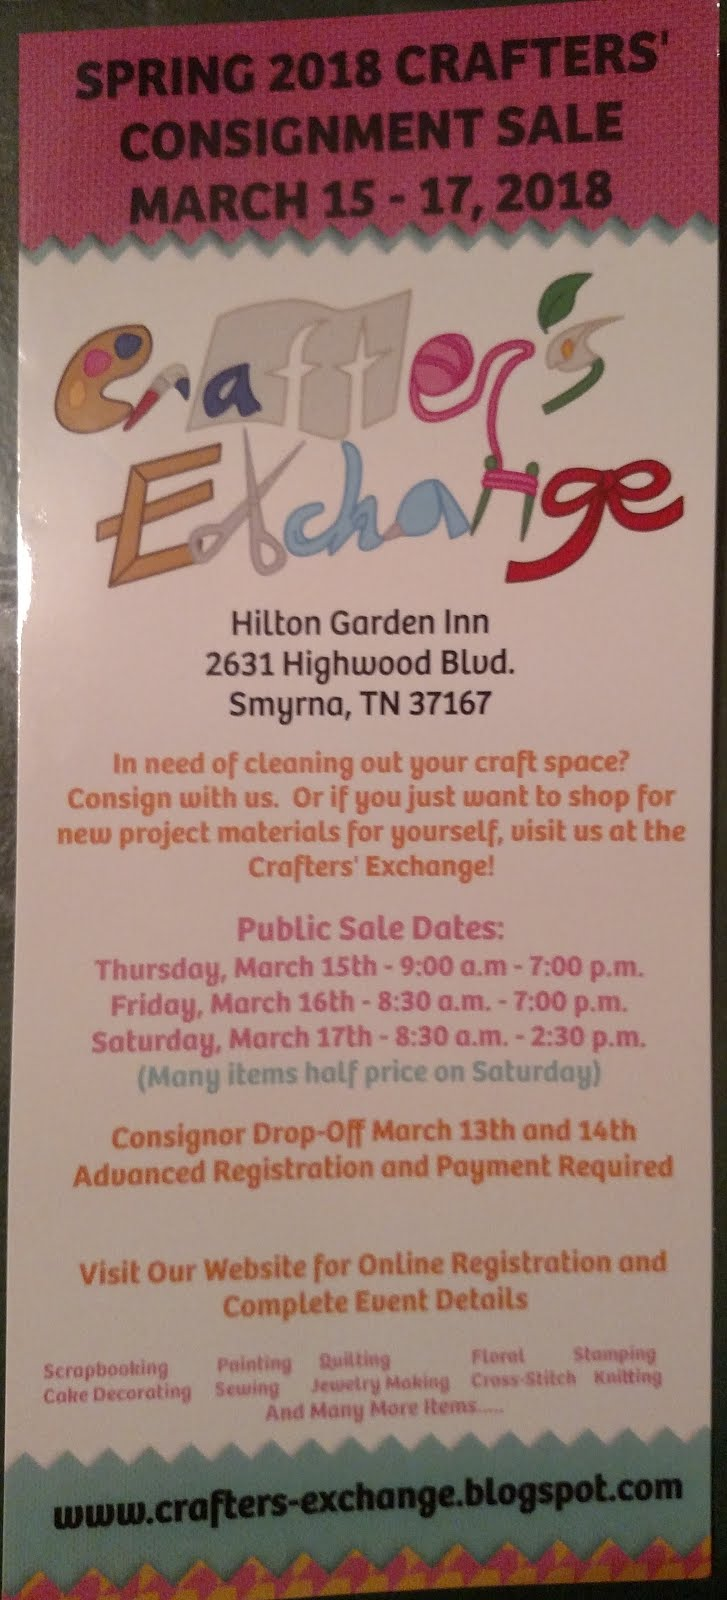 Spring 2018 Crafters' Consignment Sale Flyer